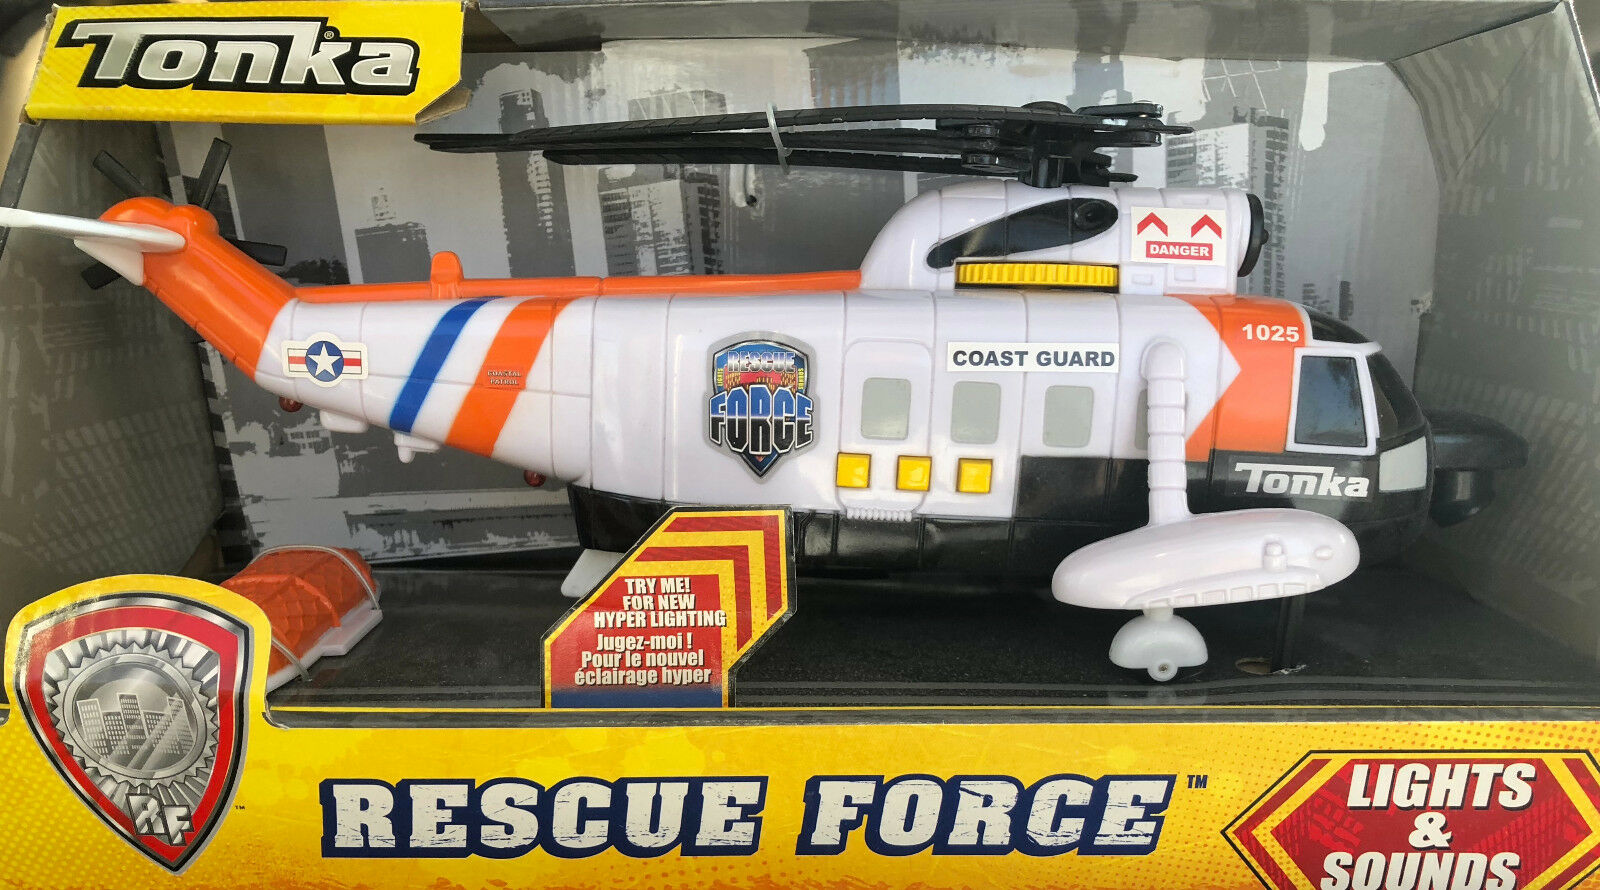 Brand New Tonka Coast Guard Rescue Force Helicopter 1025 Lights & Sounds Rare